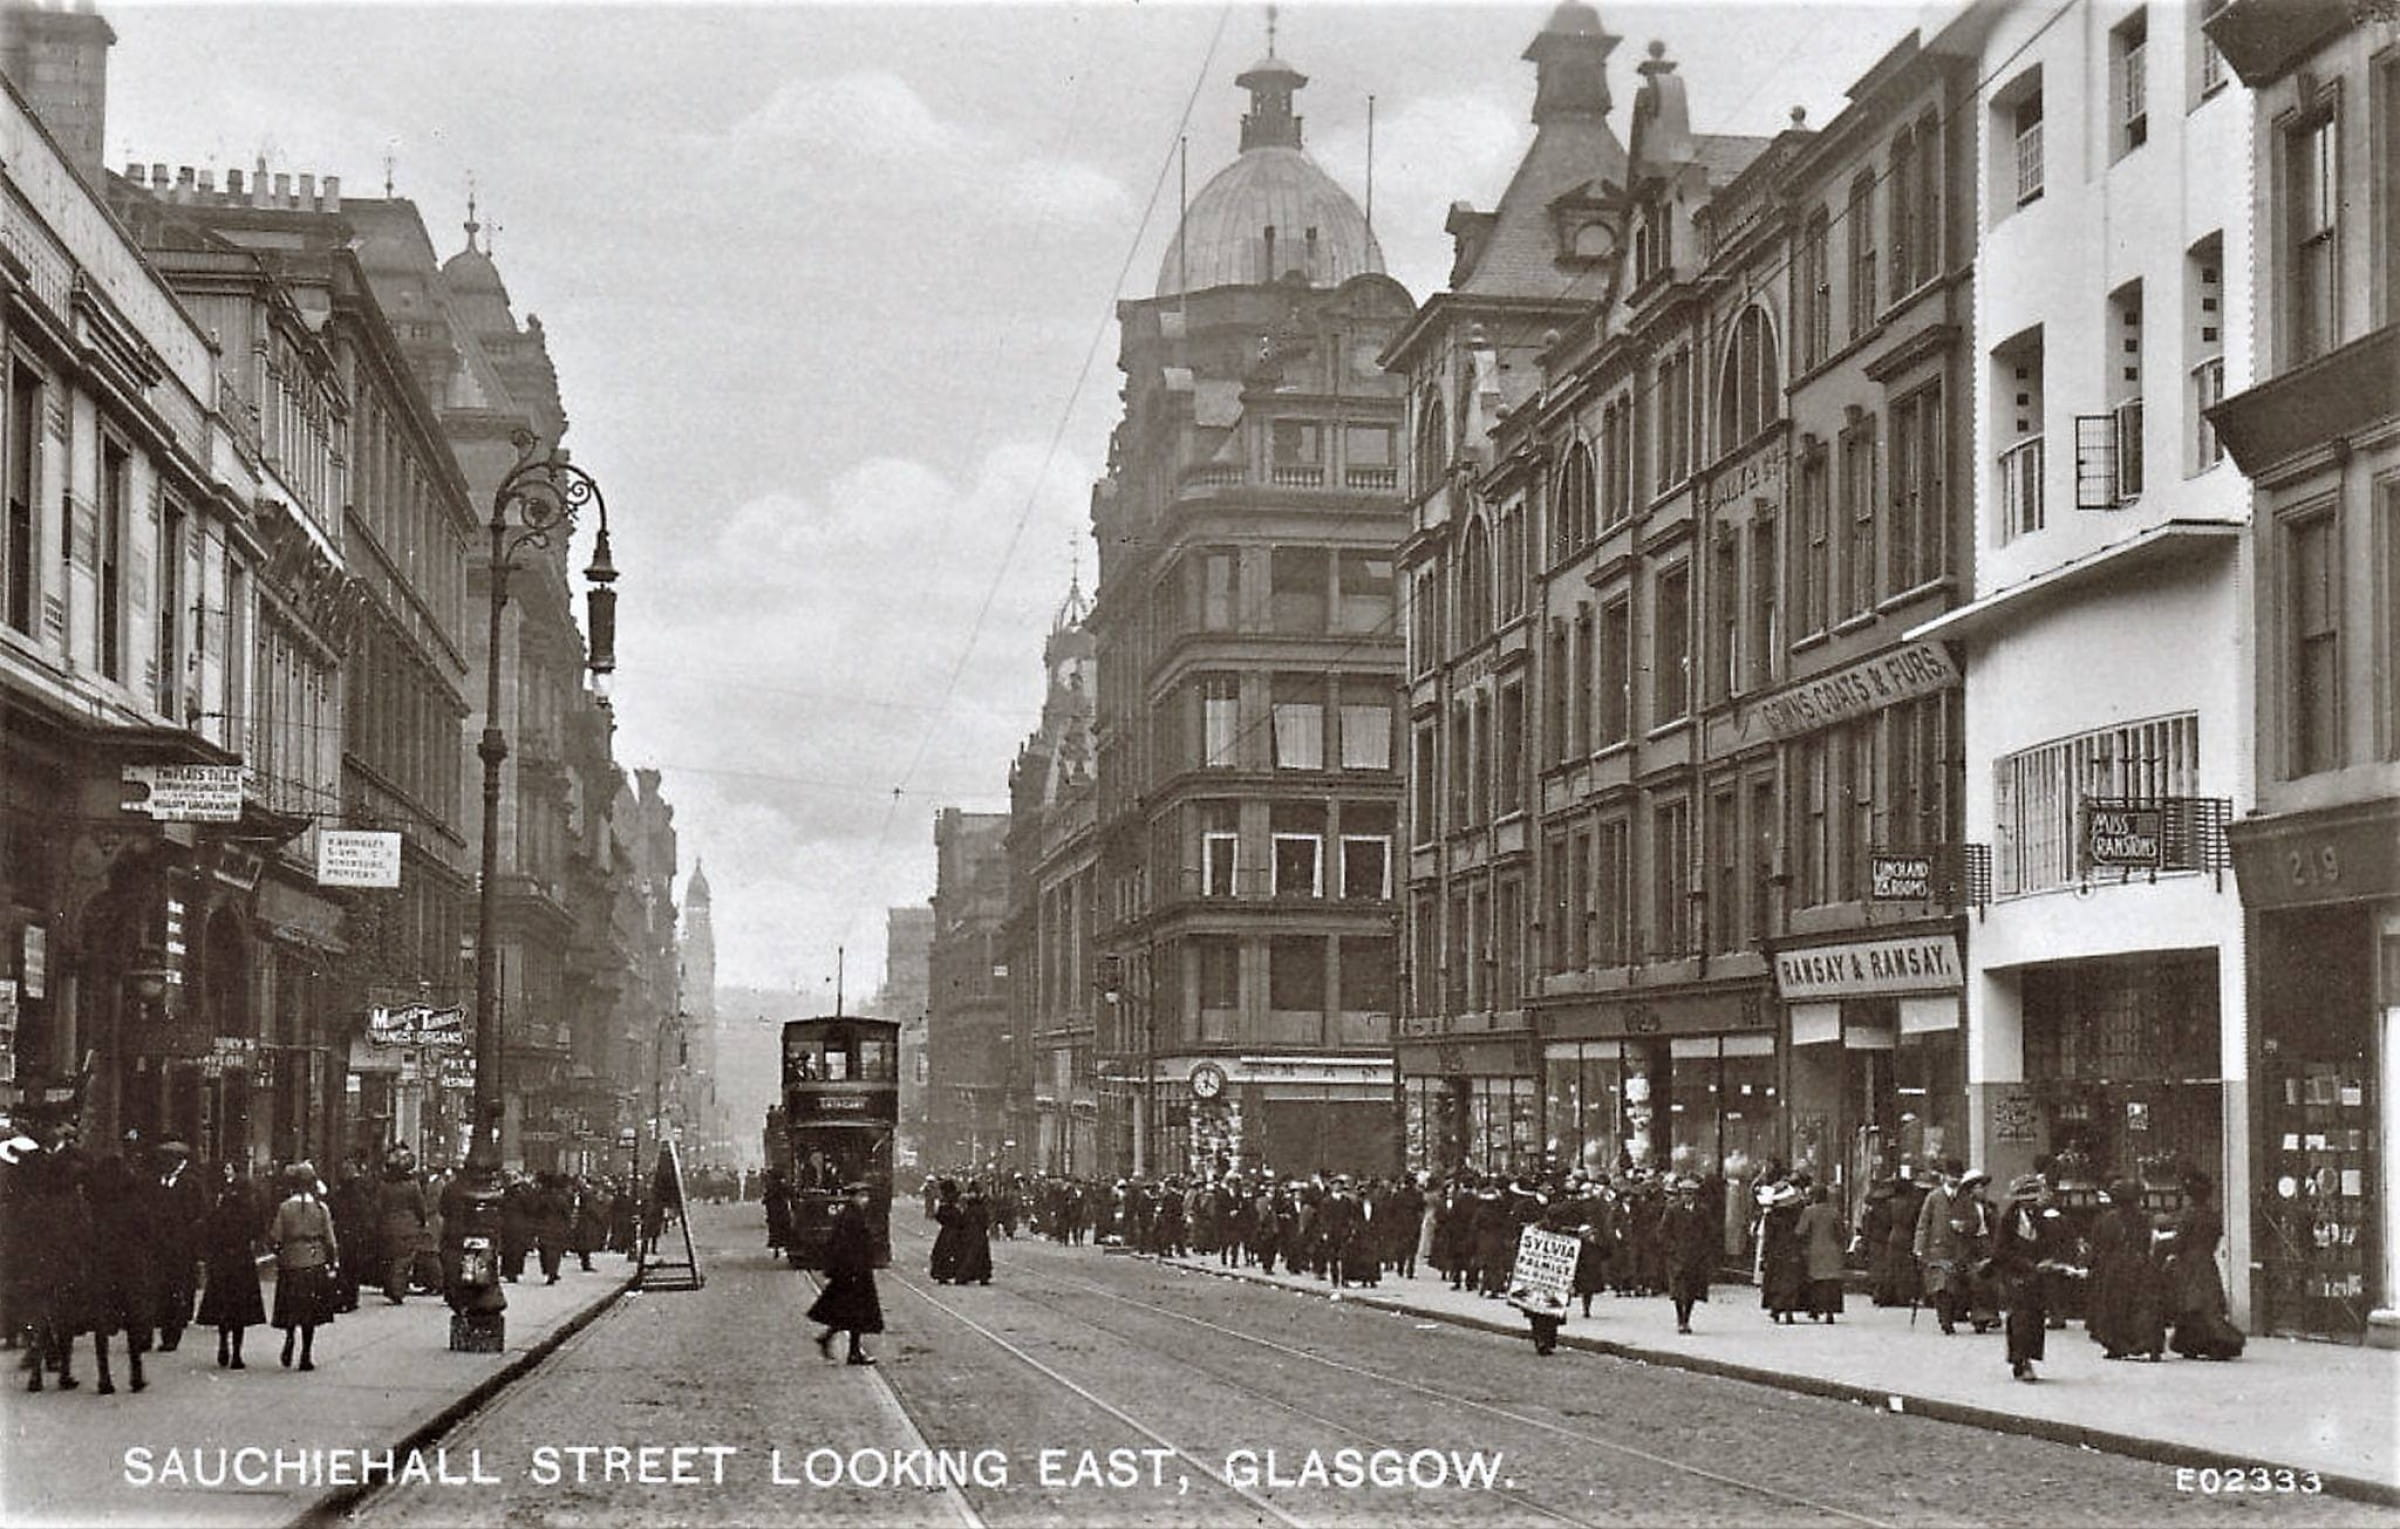 More tea and sympathy (The Willow Tea Rooms, Sauchiehall Street, c. 1908 (Postcard))